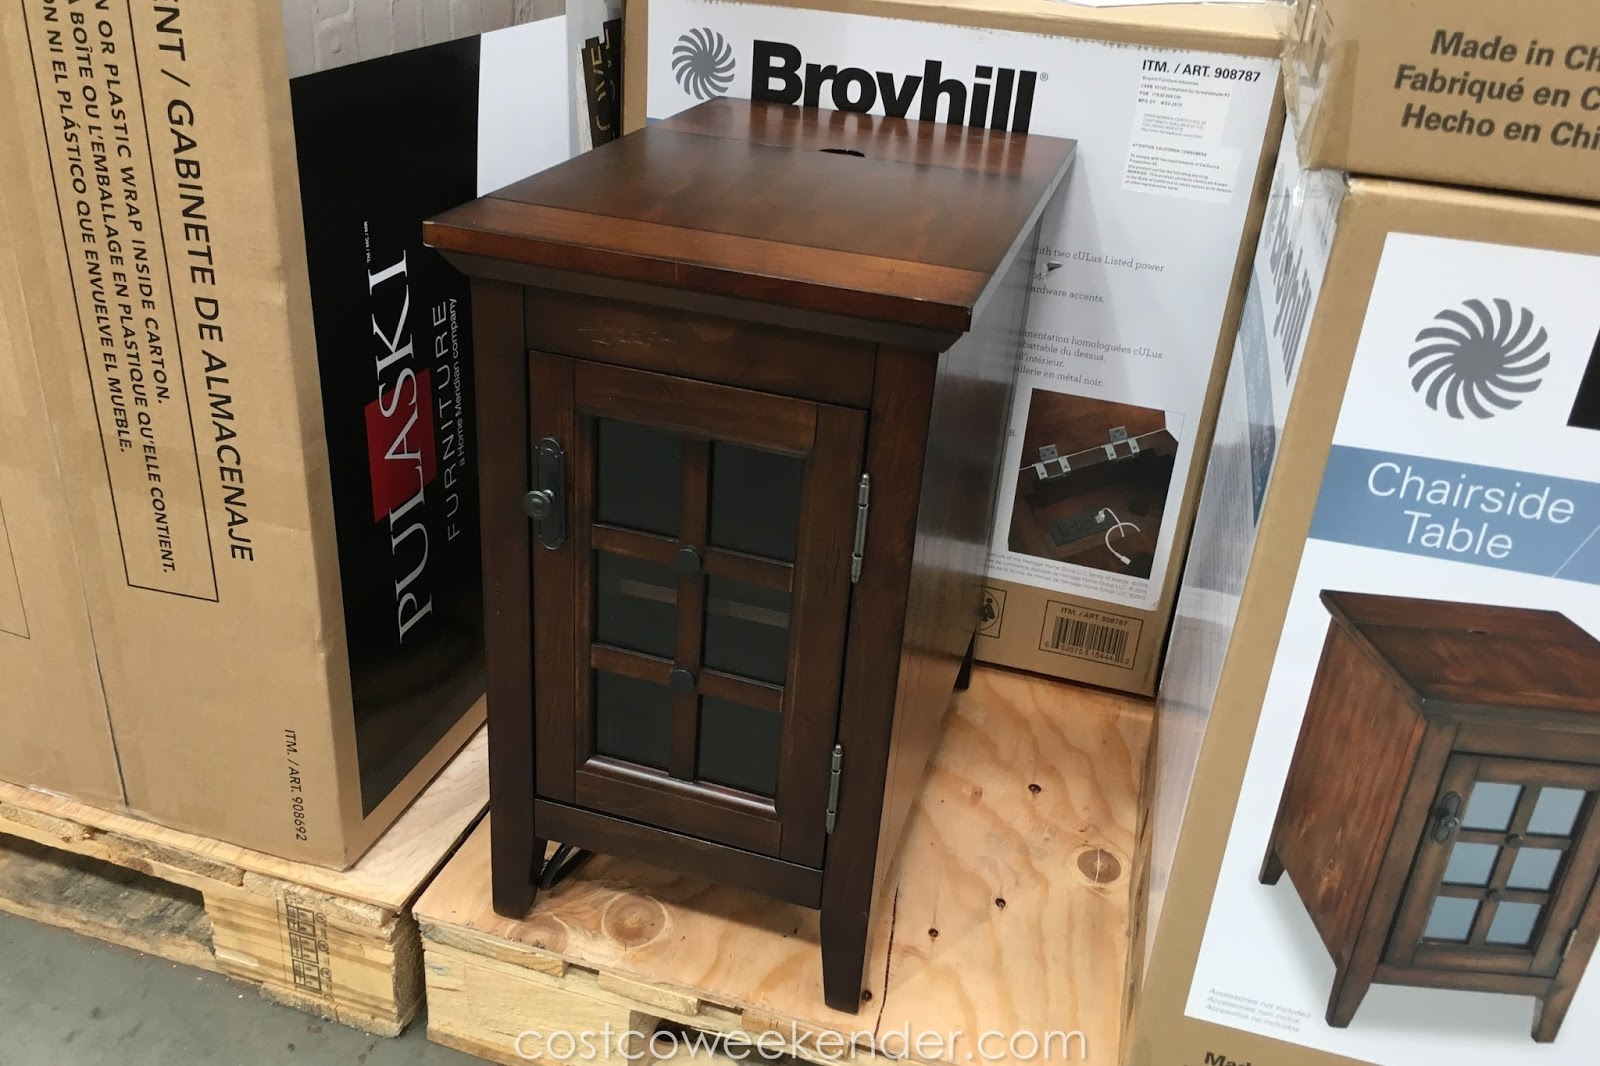 jcp furniture probably terrific cool broyhill end table with chairside weekender drawer great nightstand baskets for under coffee ashley living room tables inexpensive commercial